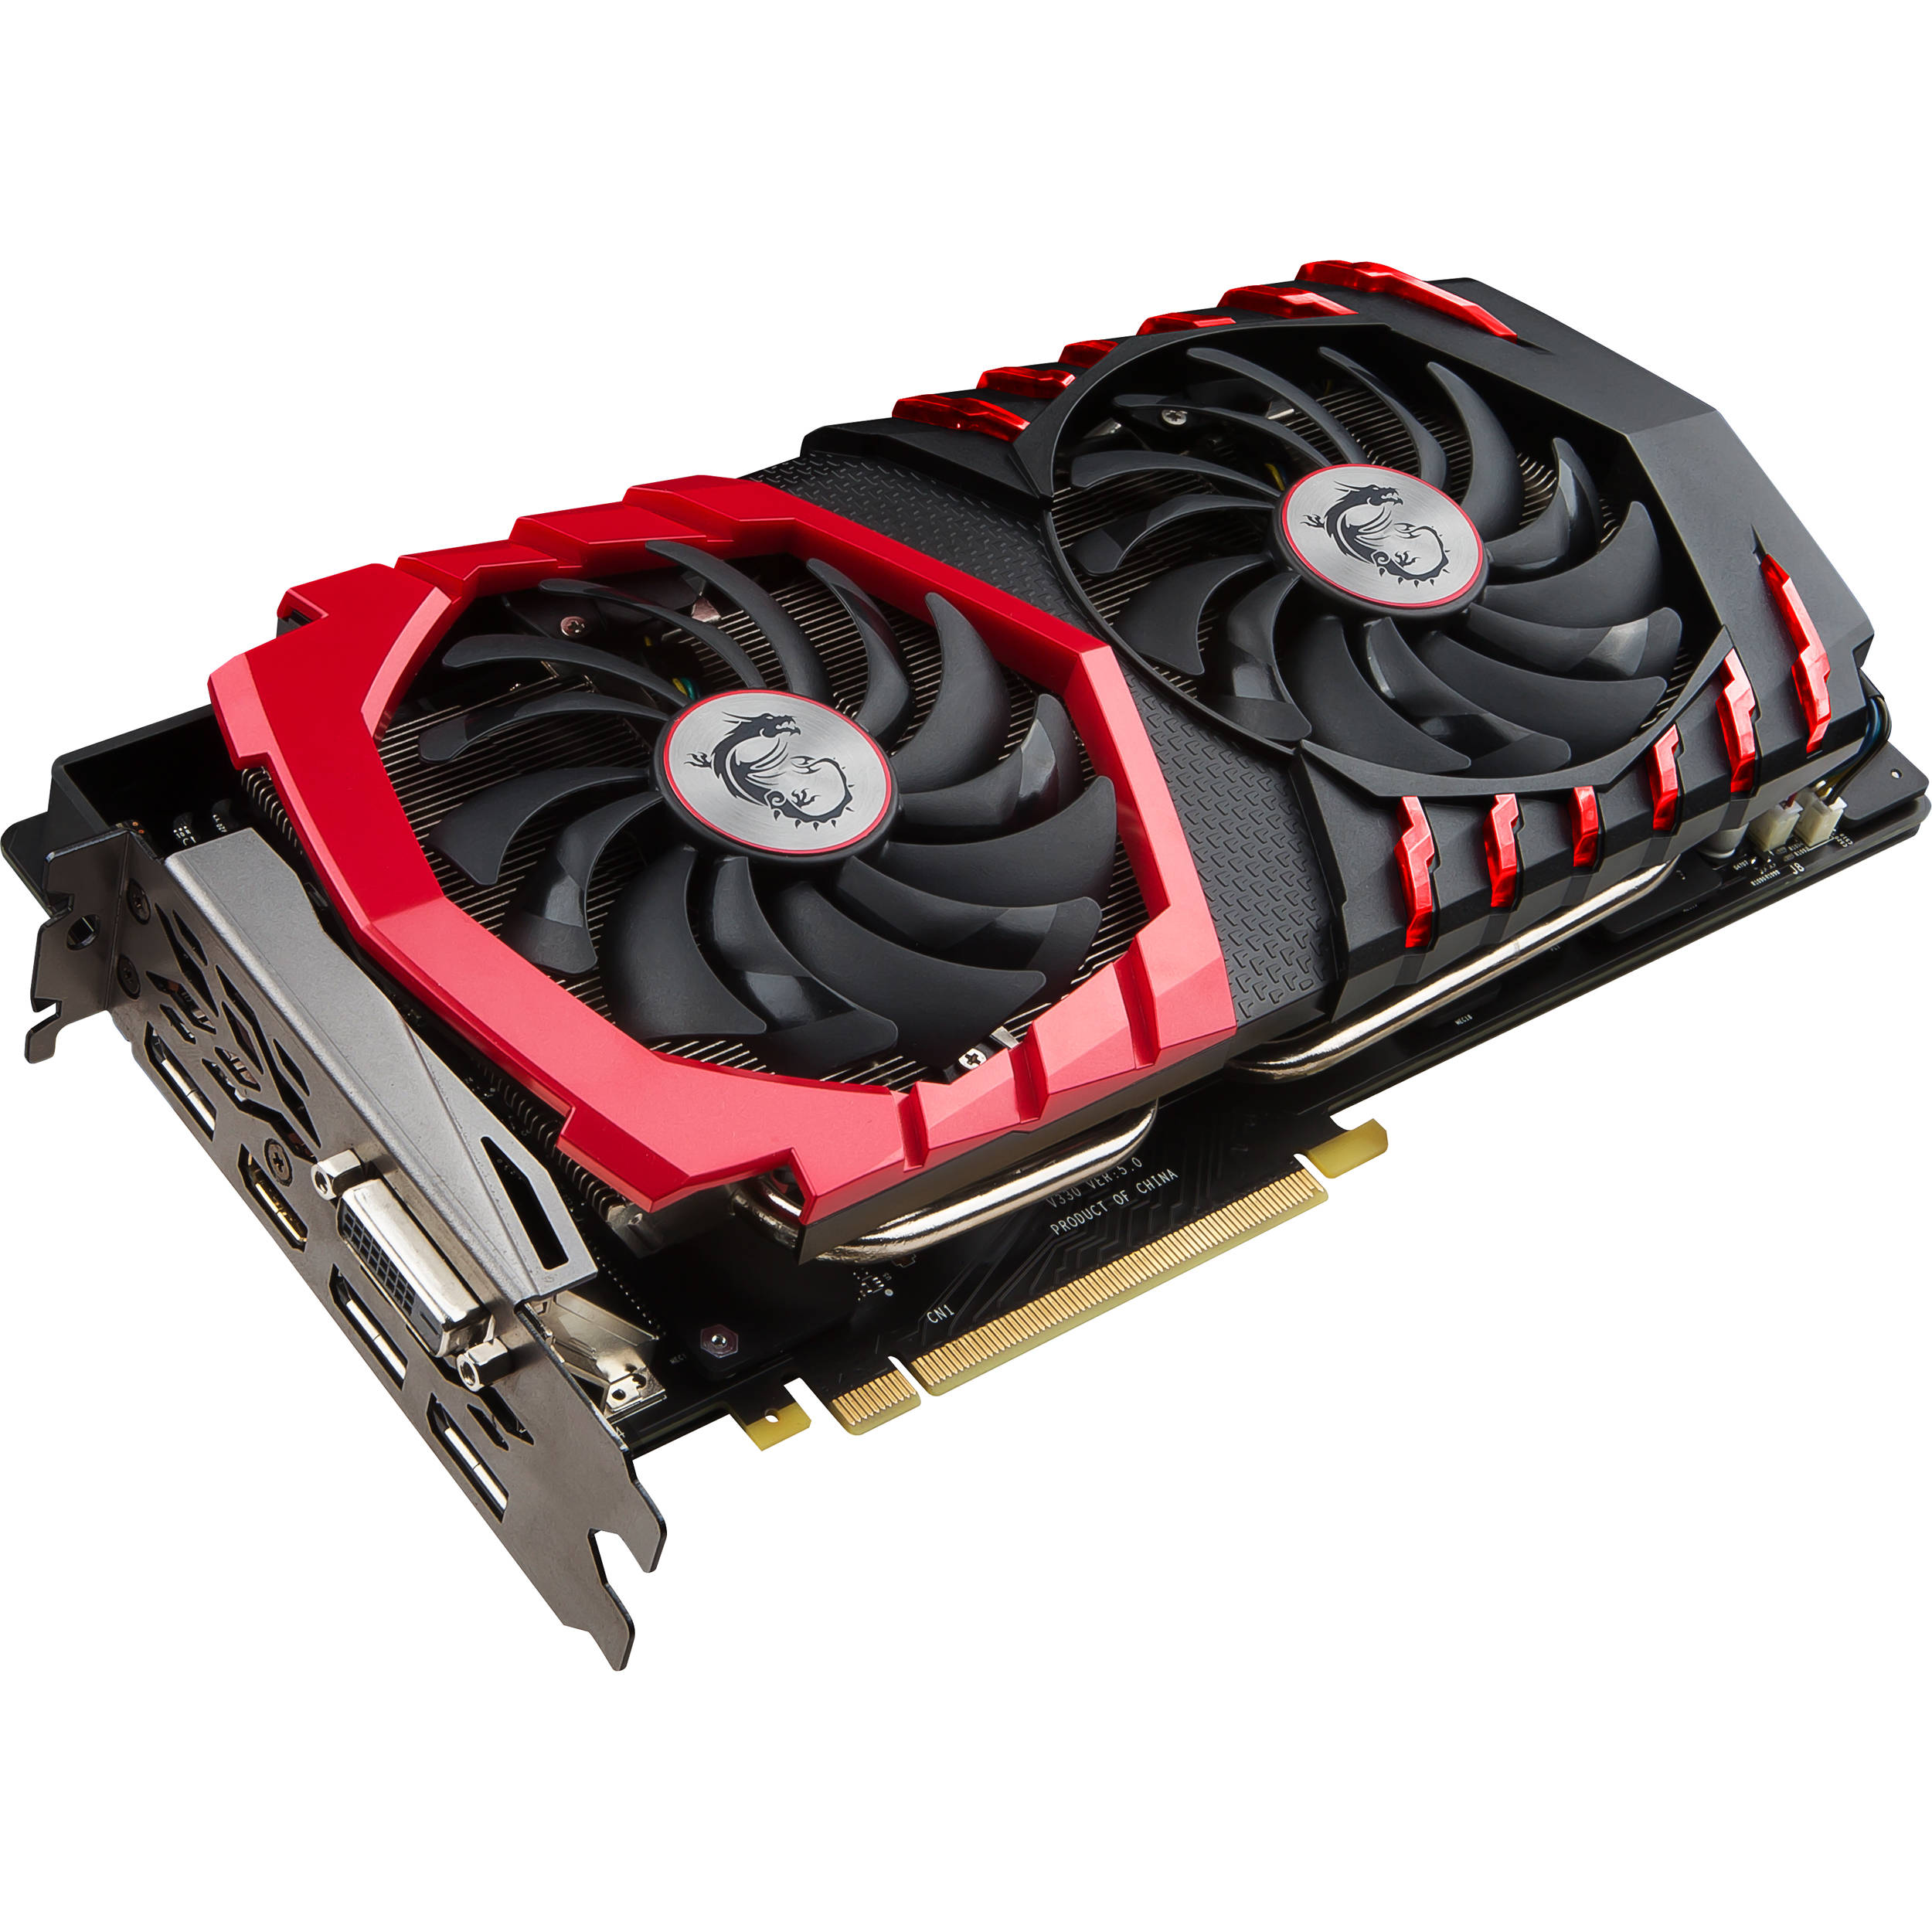 MSI GeForce GTX 1070 Ti GAMING 8G Graphics GTX 1070 TI GAMING 8G